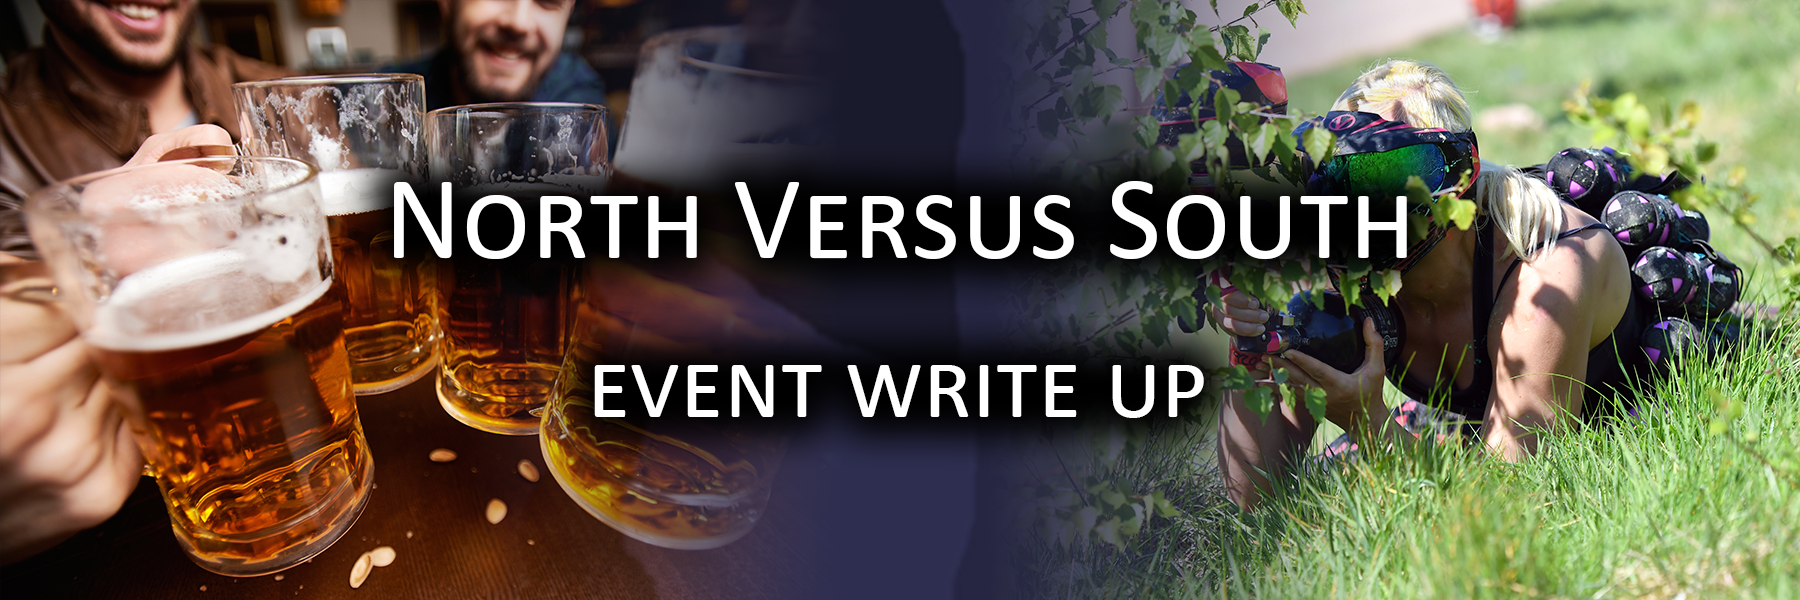 North Versus South Event Writeup